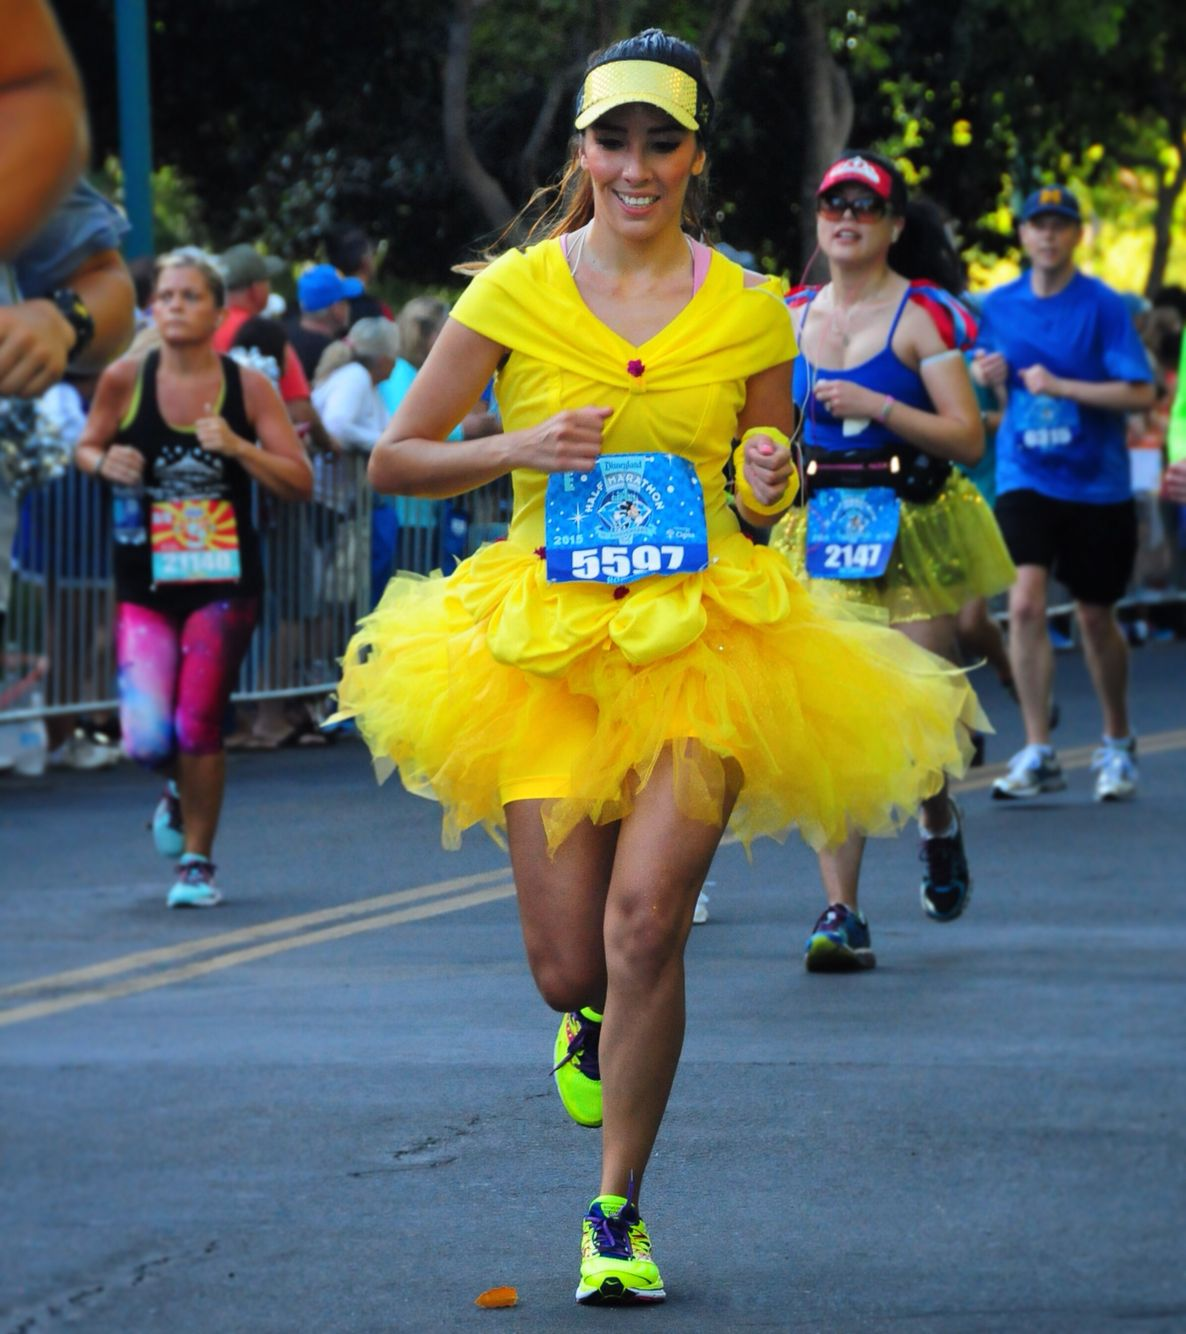 Wonder Woman inspired running outfit | Costume Ideas for ... |Disney Running Costumes Ideas Women